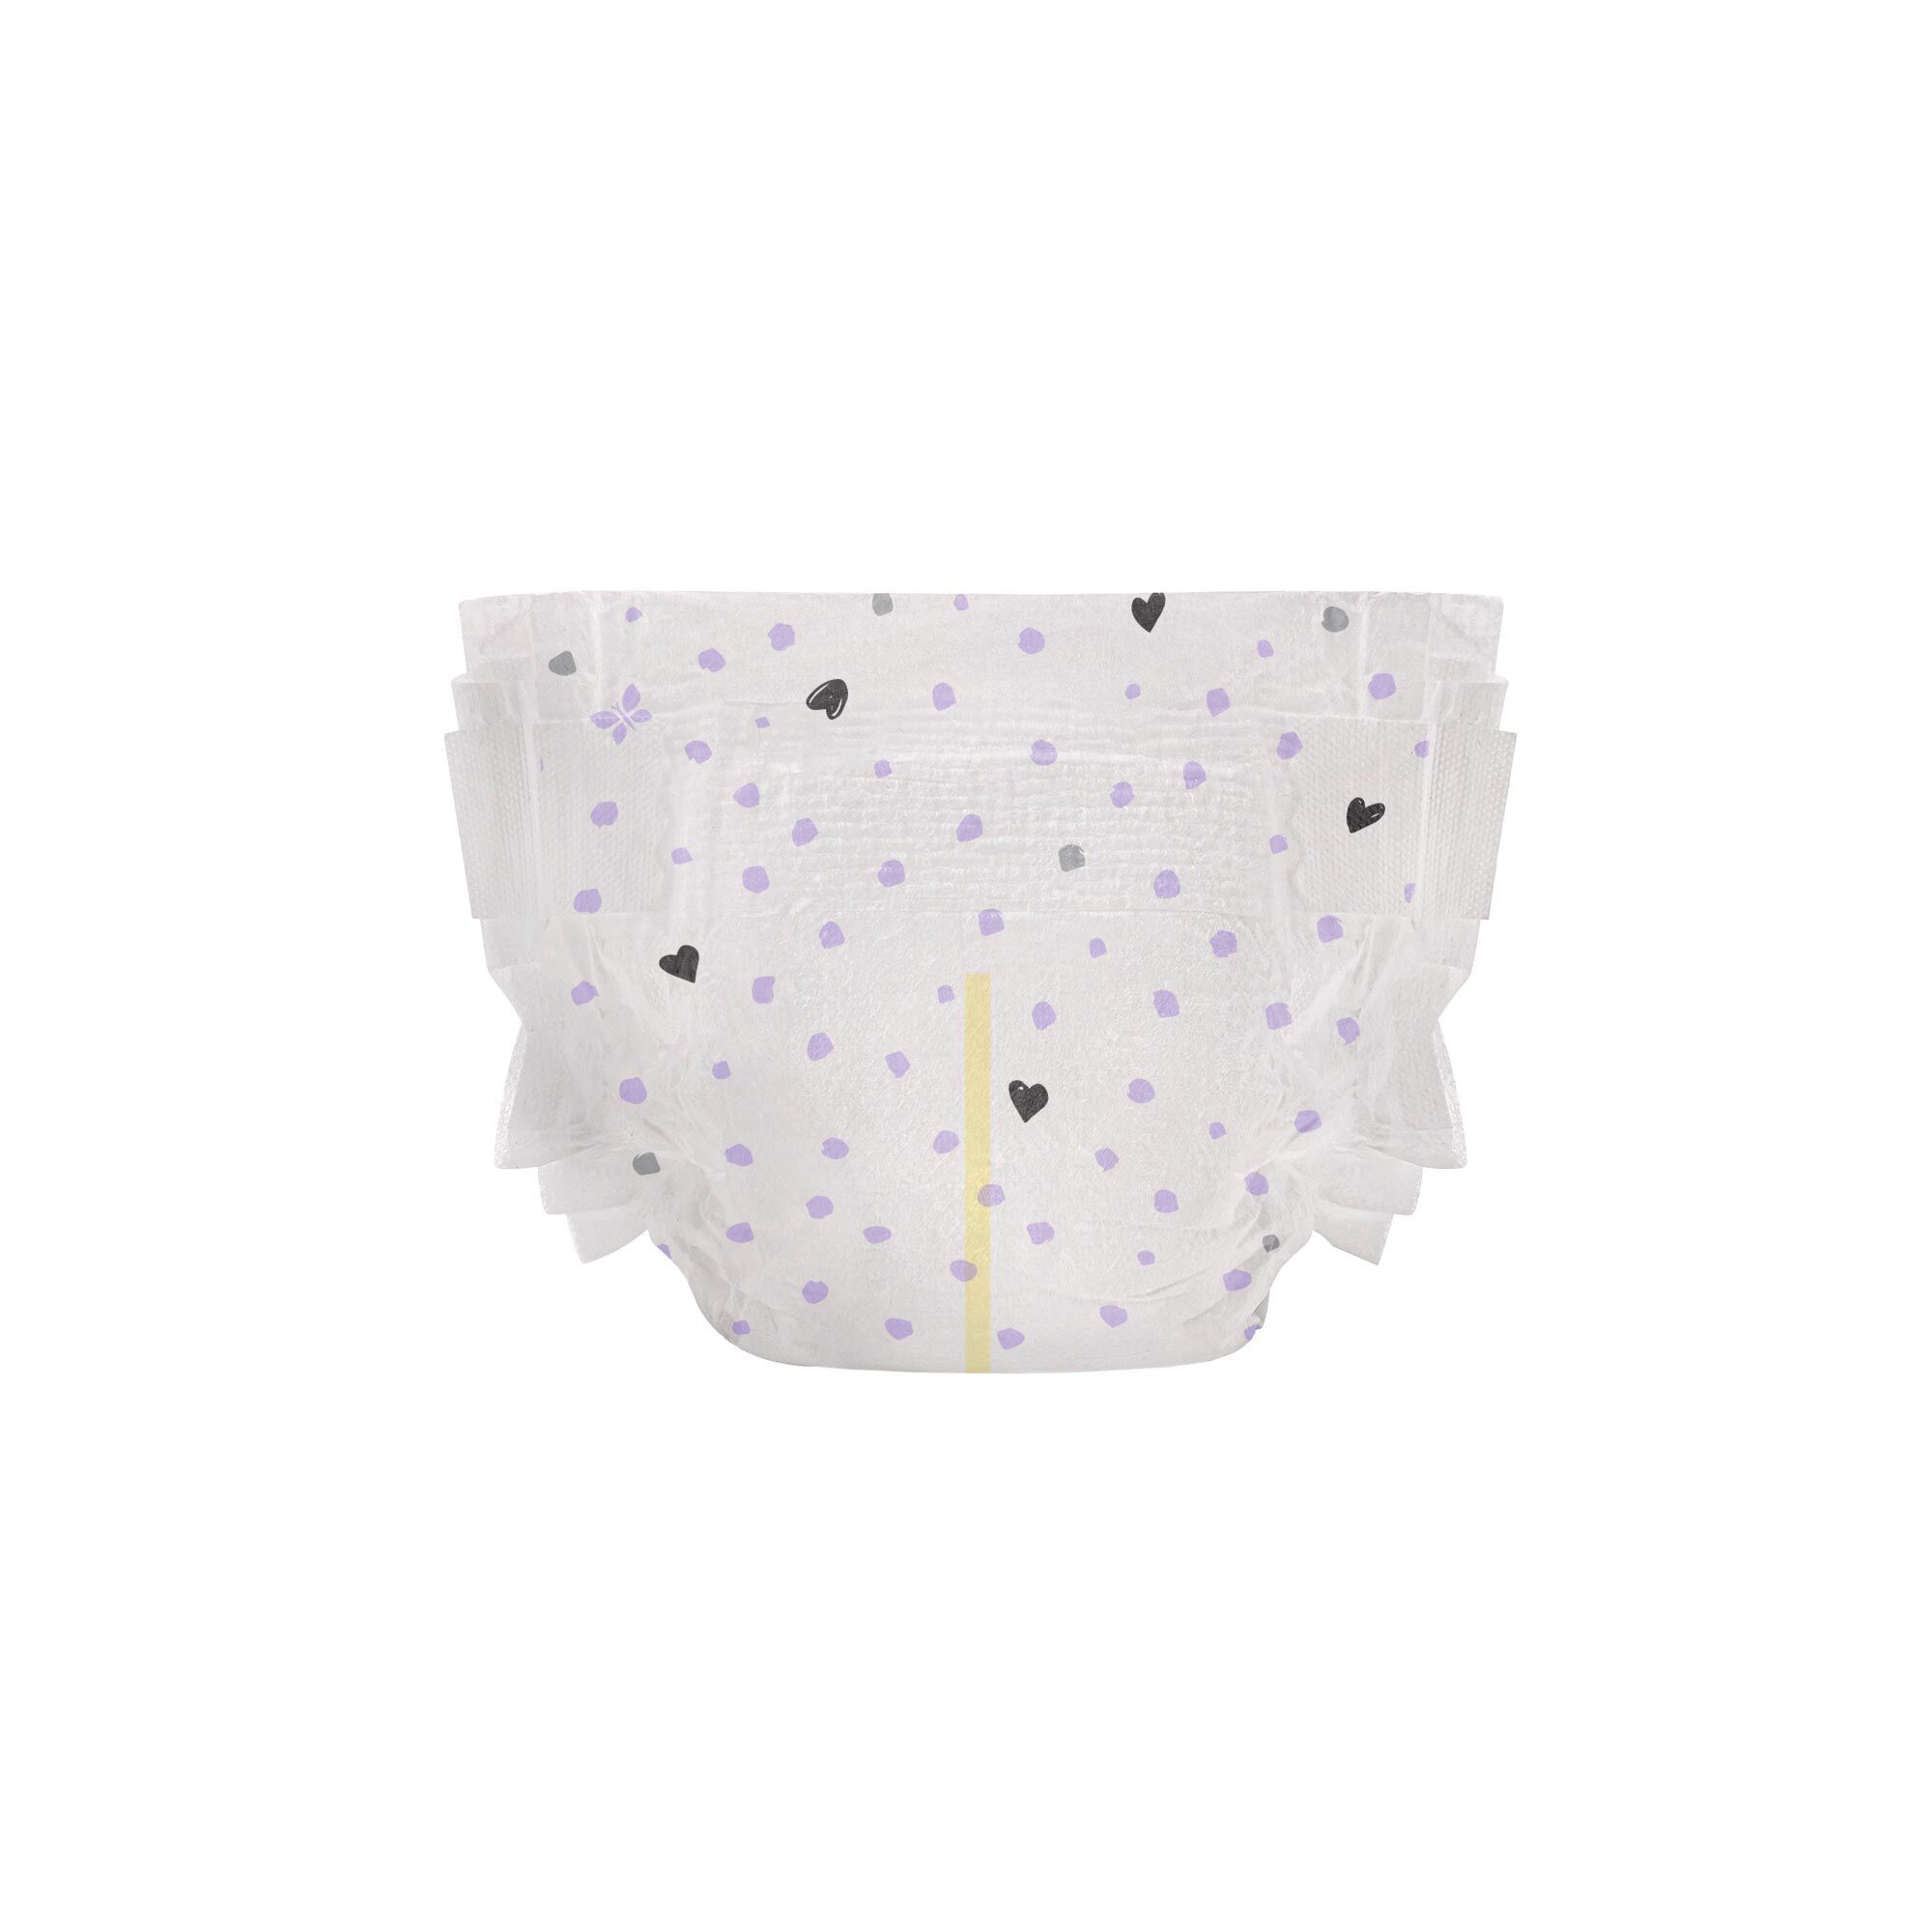 Clean Conscious Diaper, Young at Heart, Size 1